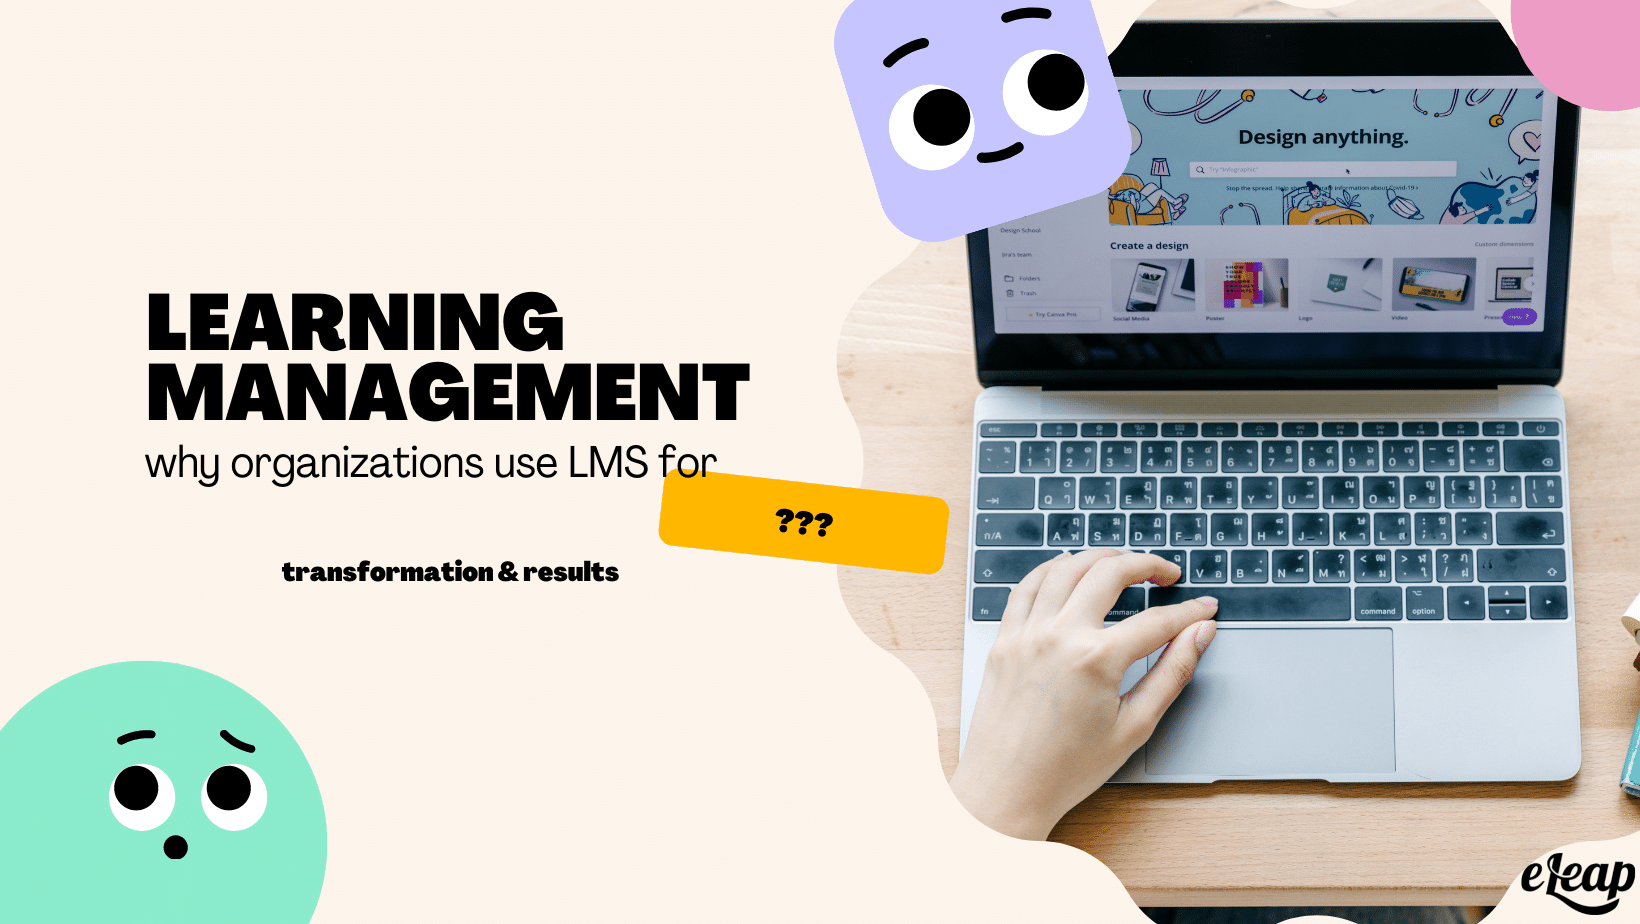 Why Organizations Use Learning Management LMS For Results